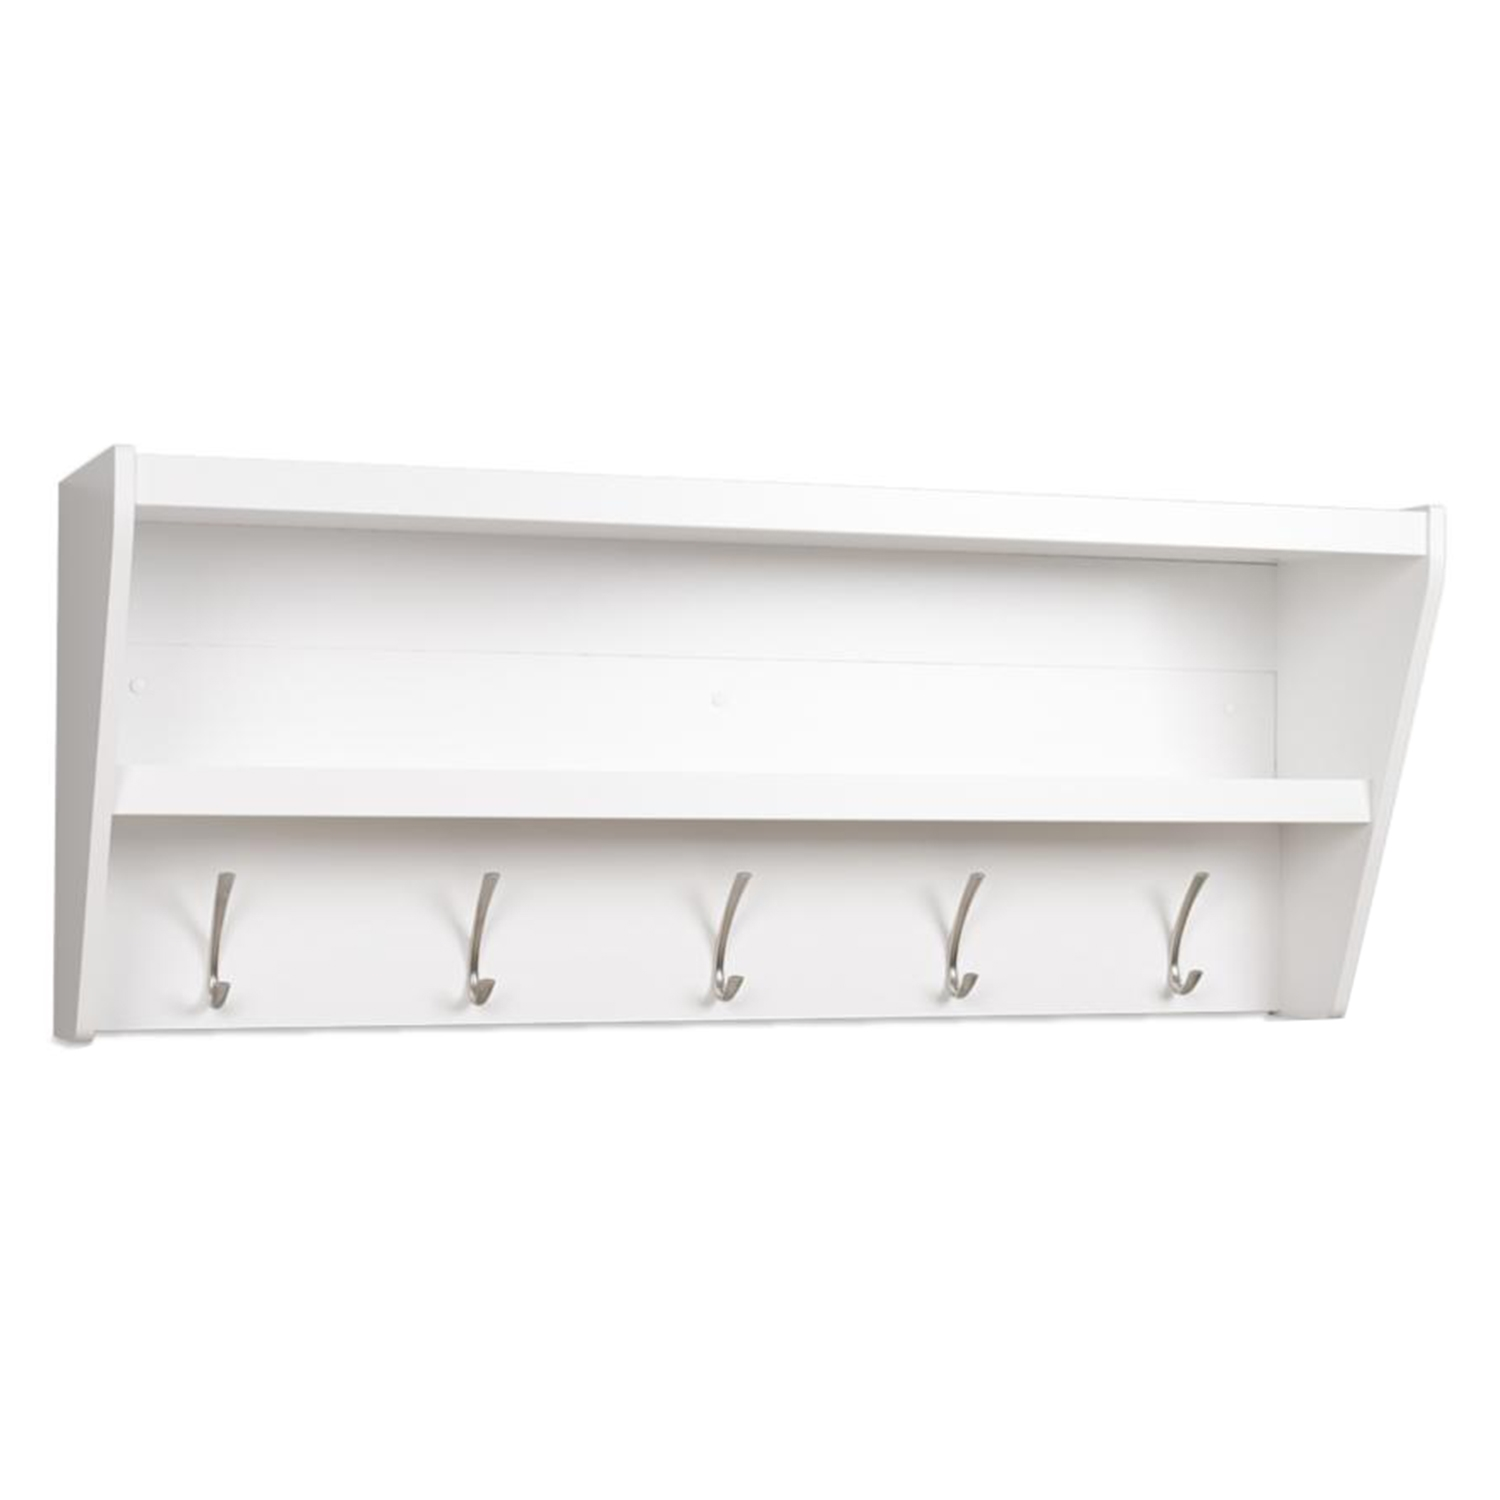 Floating Entryway Shelf and Coat Rack - White - PRE-WUCW-0500-1